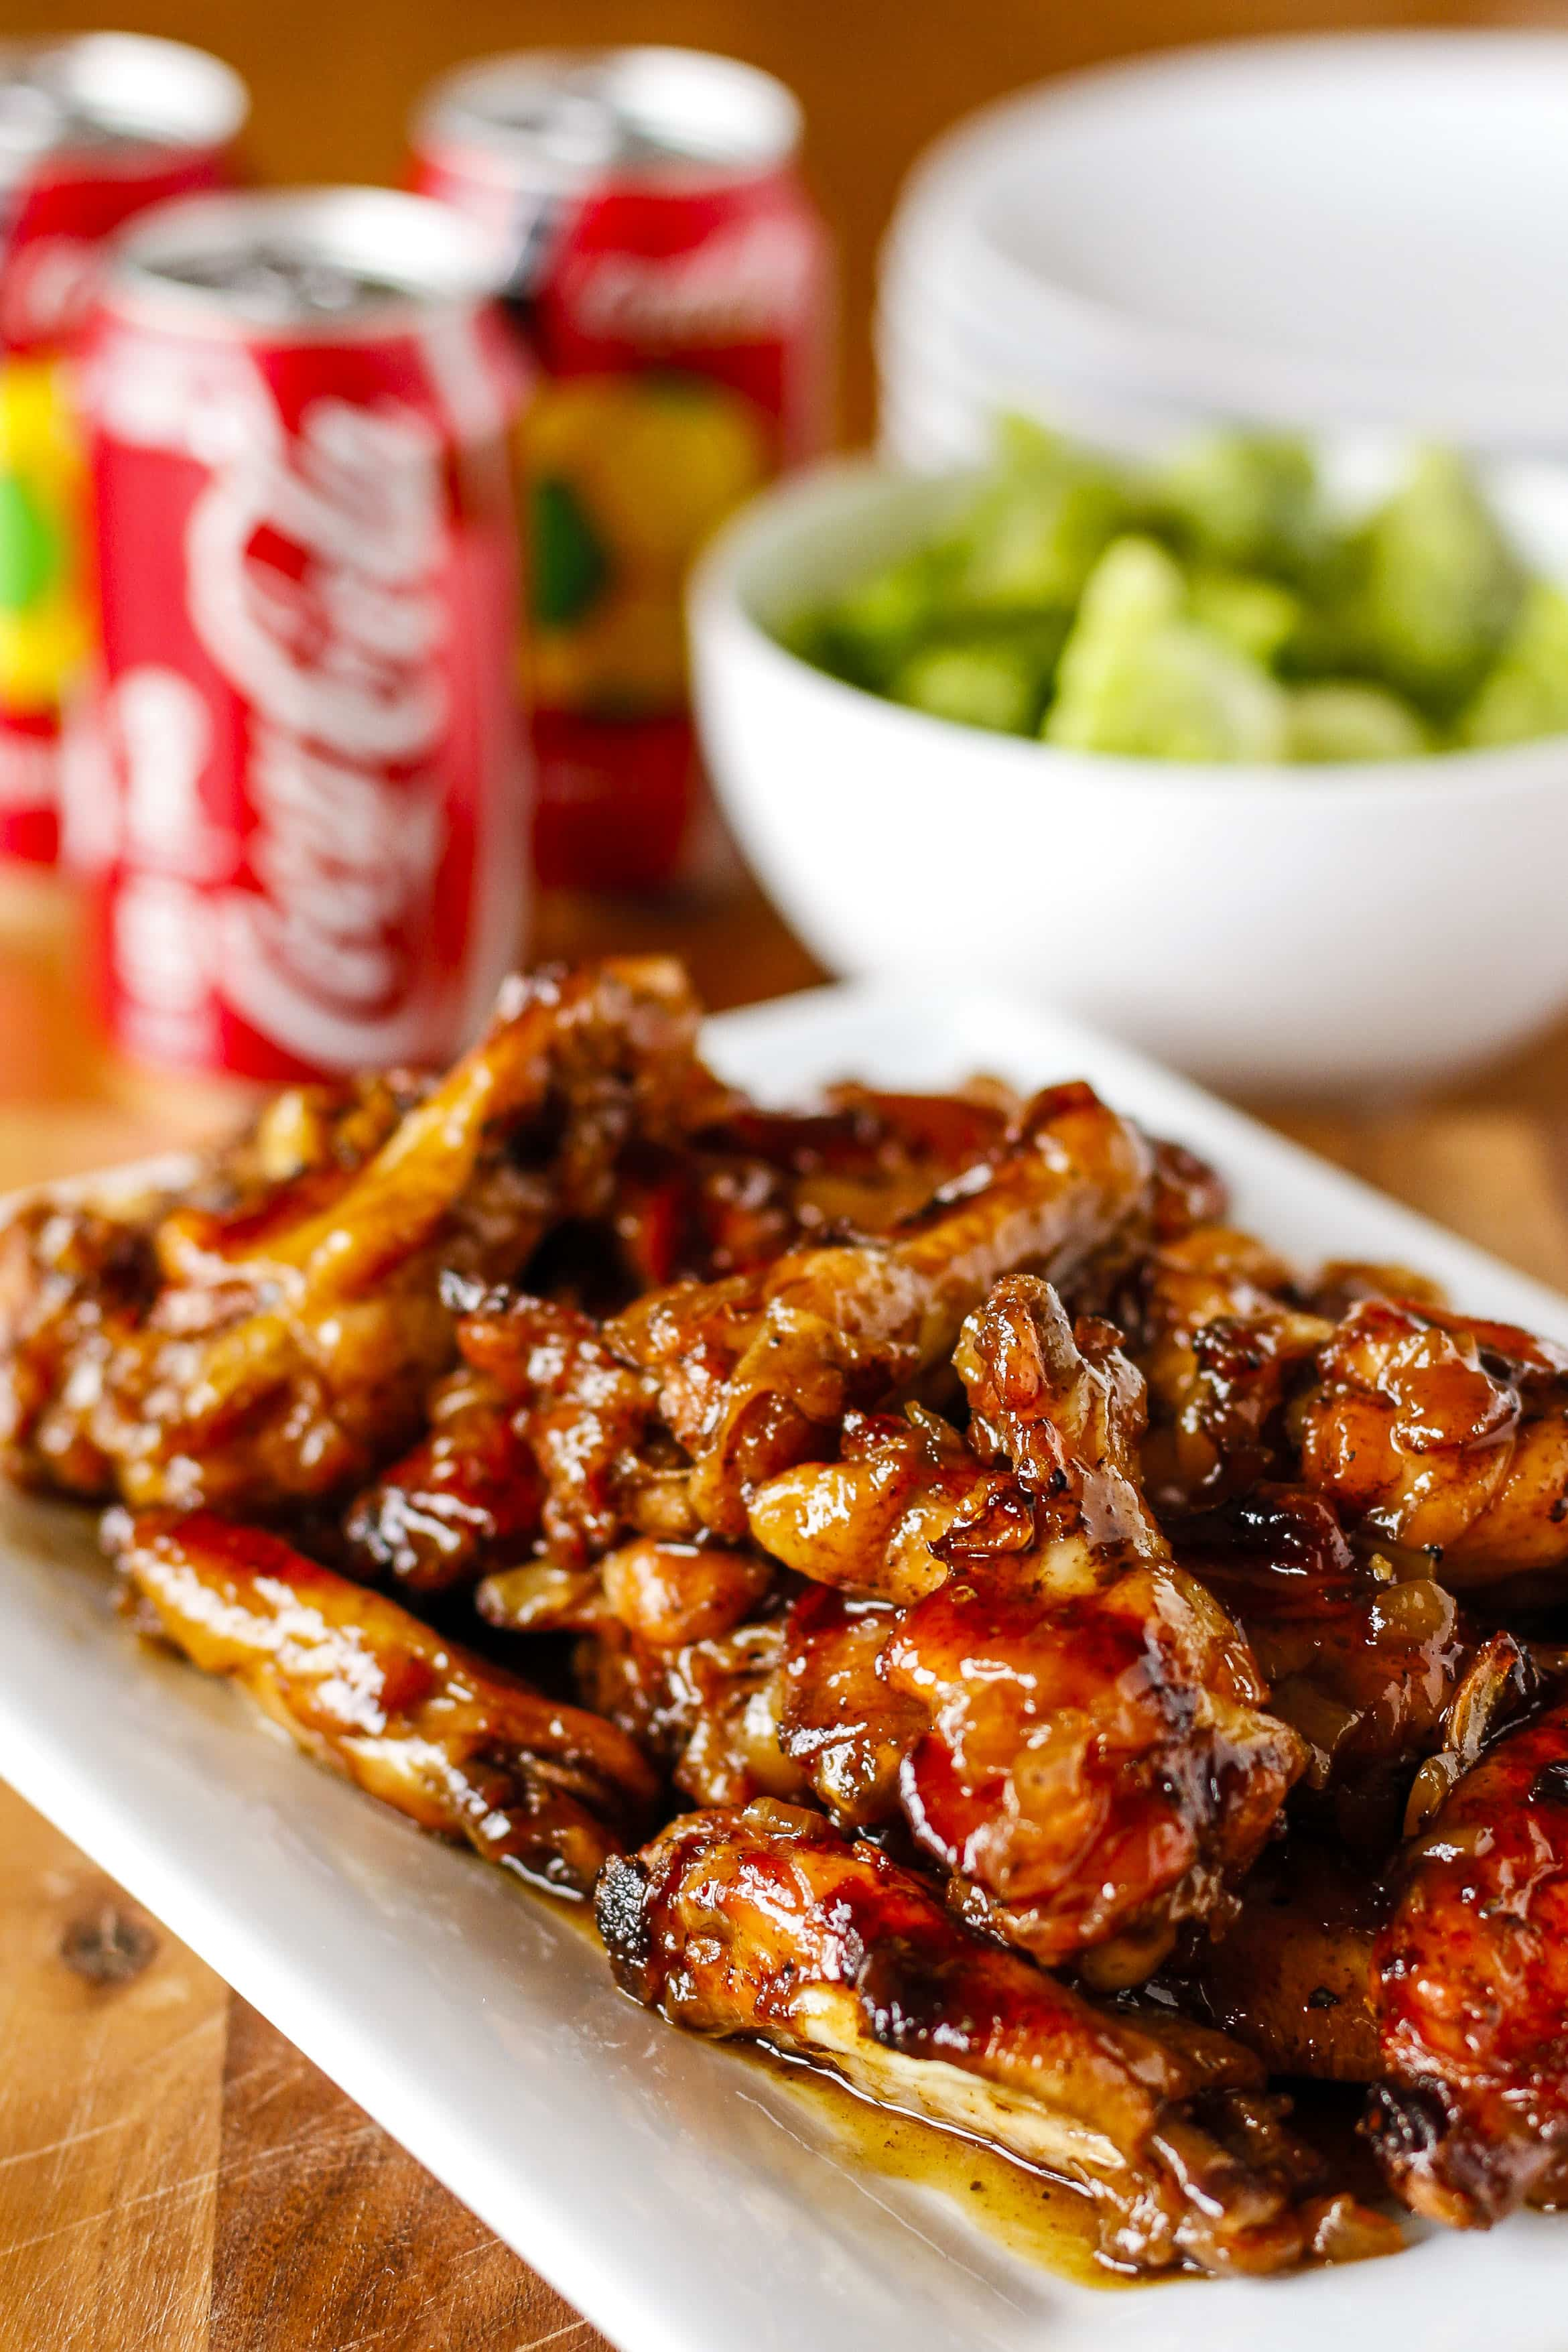 Coca-Cola Baked Chicken Wings -- don't miss these crispy baked chicken wings smothered in a delicious sweet and tangy sauce made with Coca-Cola… PERFECT for game day and beyond! | oven baked chicken wings | best coca cola chicken recipe | baked coca cola chicken wings | coca cola chicken wings recipe | find the recipe on unsophisticook.com